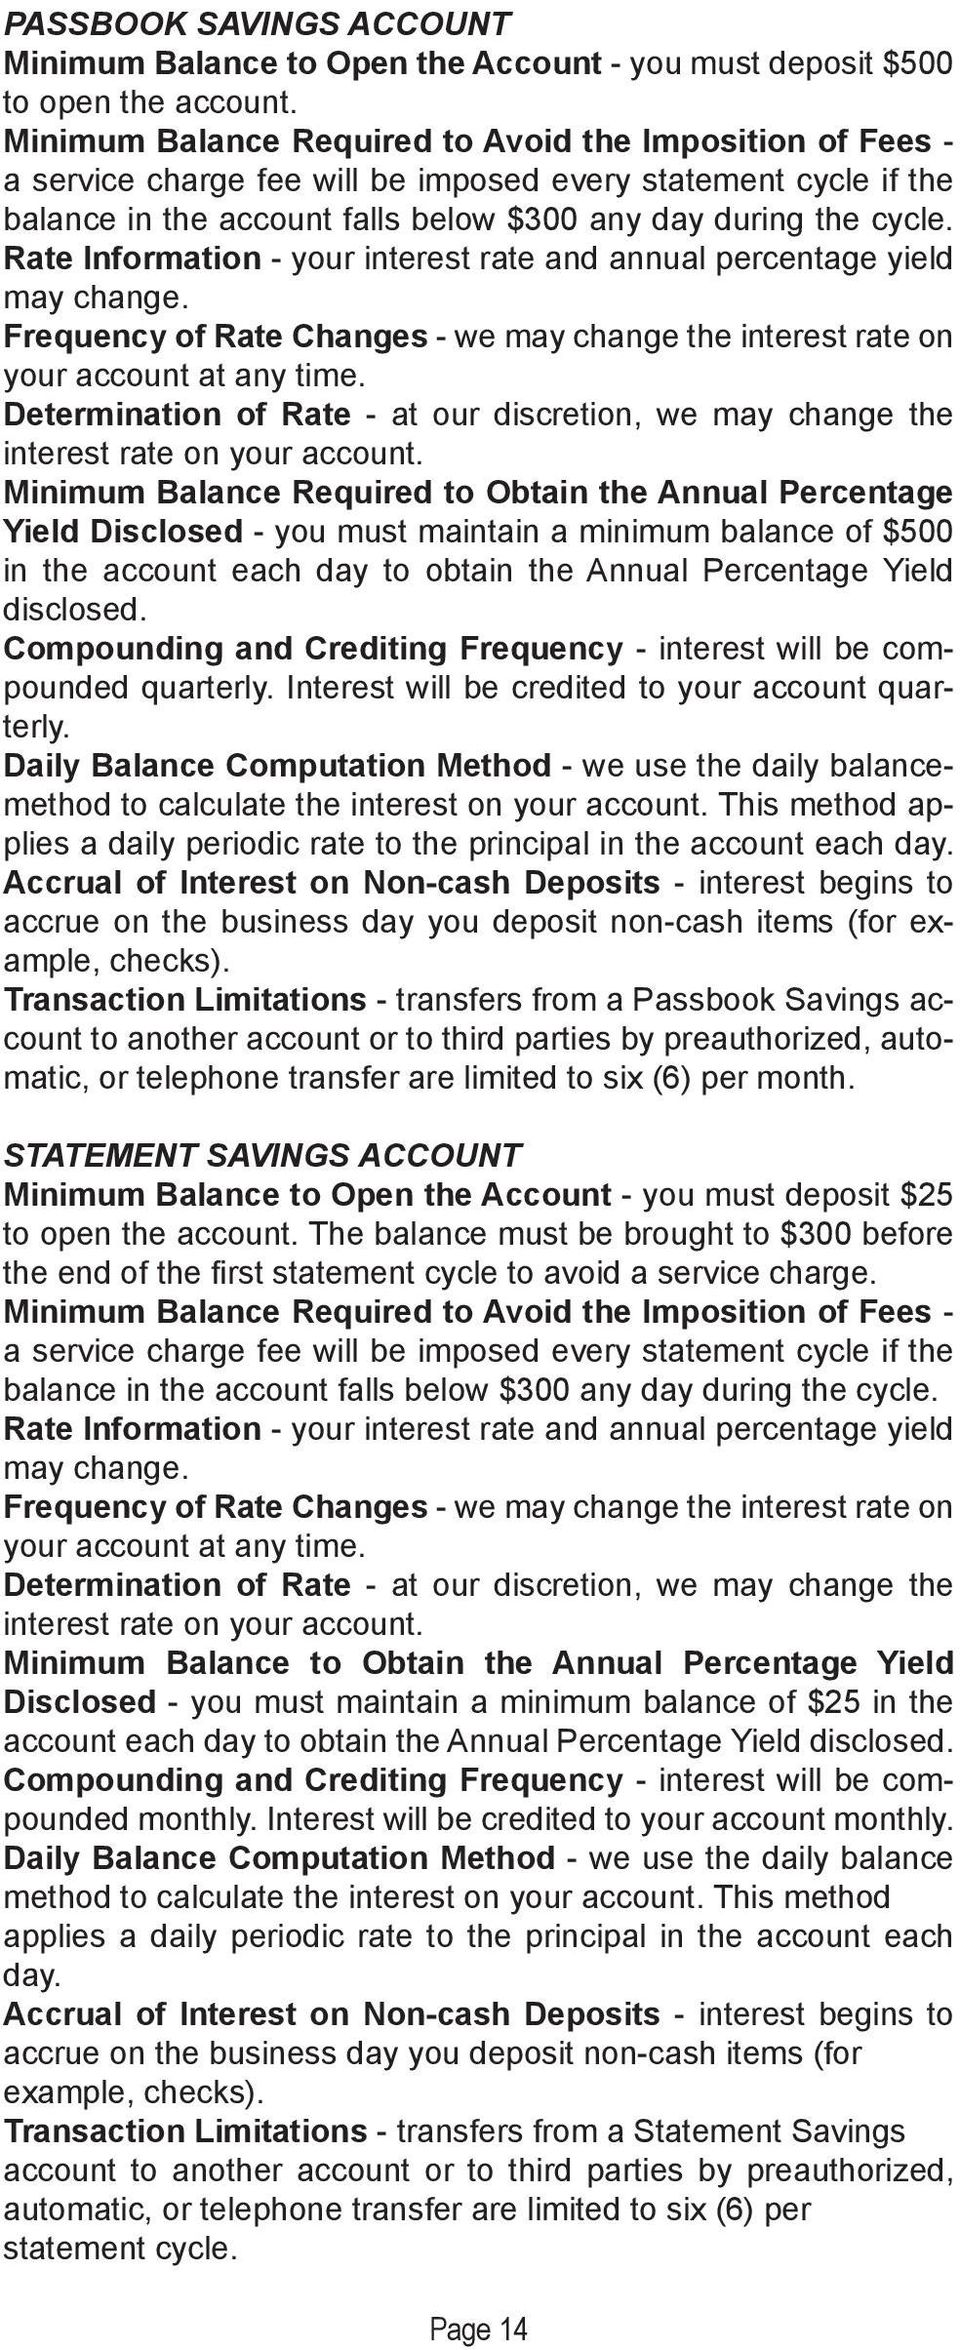 Rate Information - your interest rate and annual percentage yield may change. Frequency of Rate Changes - we may change the interest rate on your account at any time.